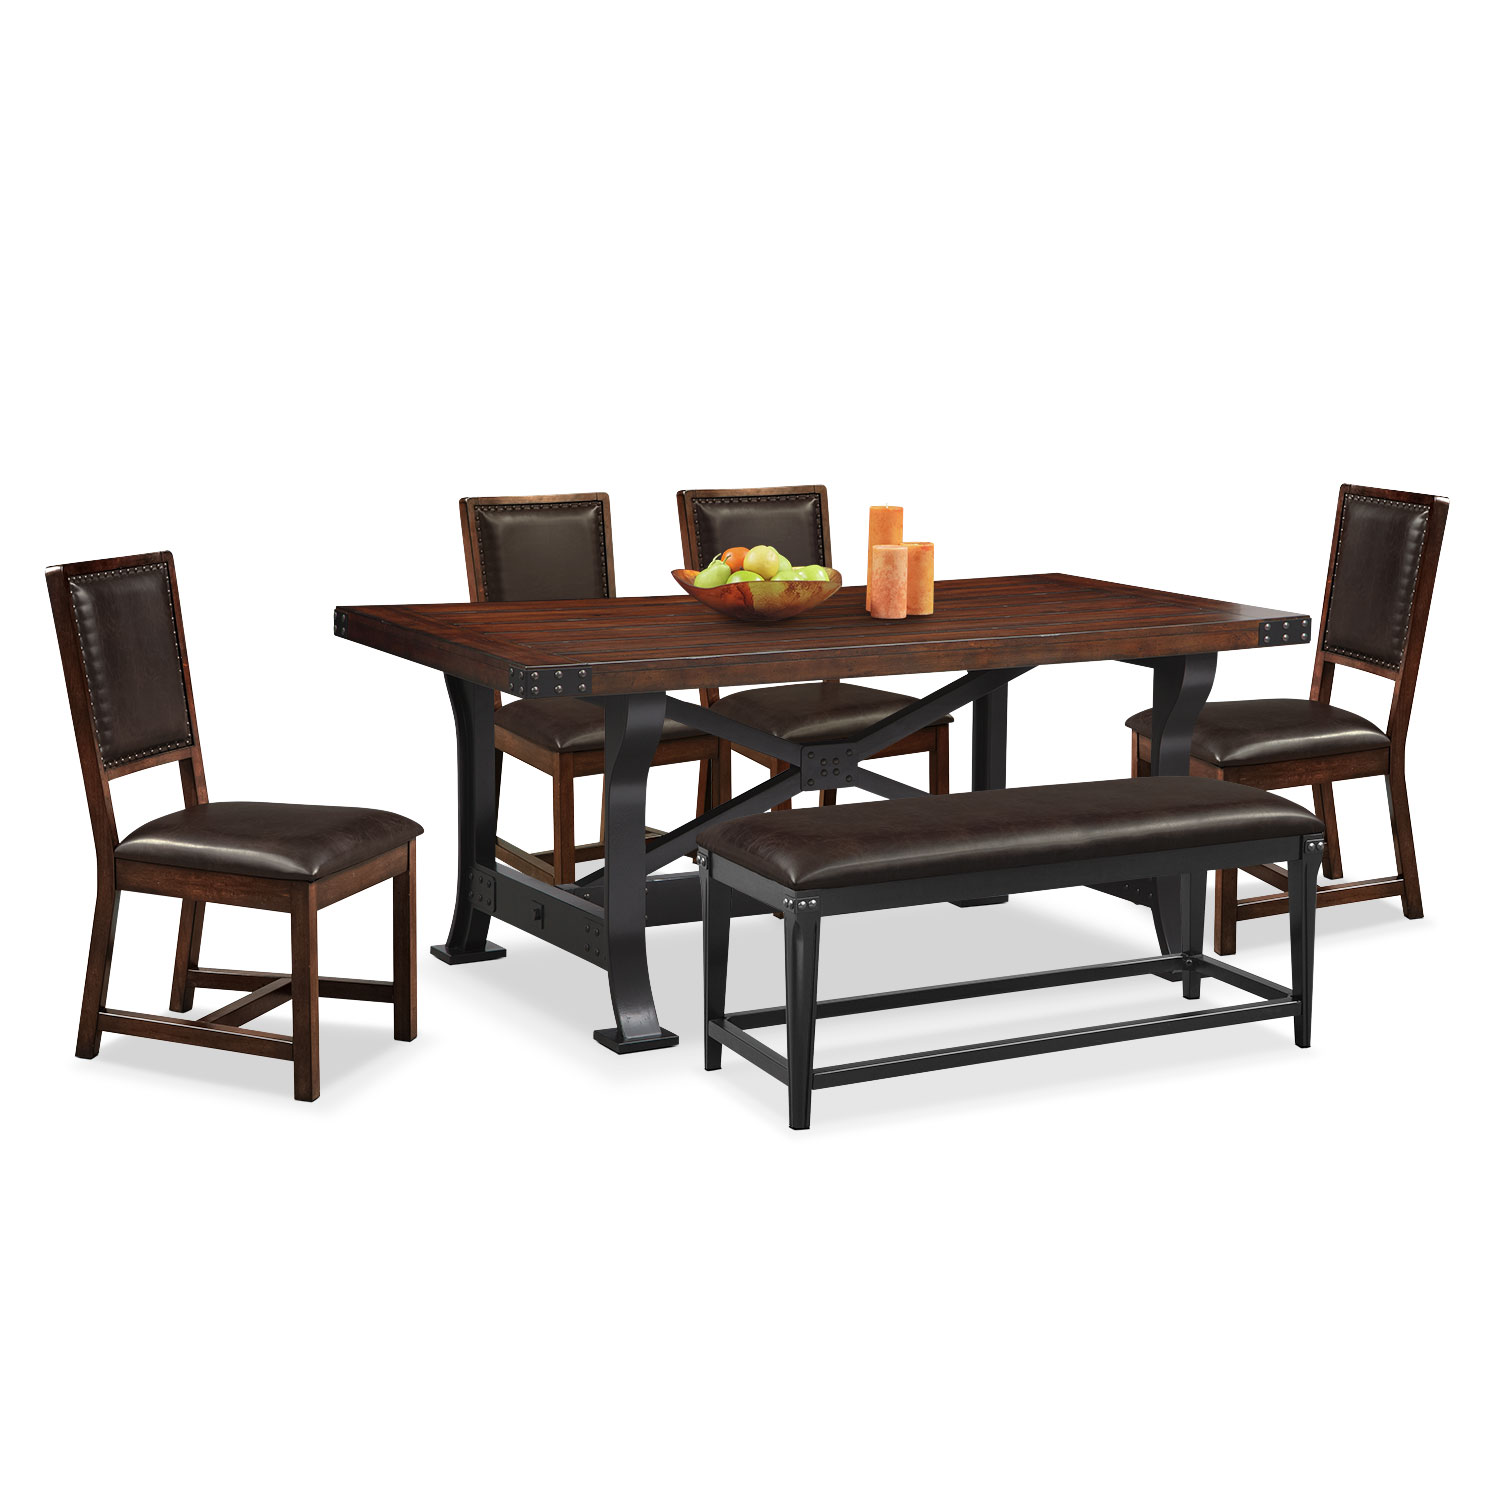 Newcastle Standard Height 6 Pc. Dining Room